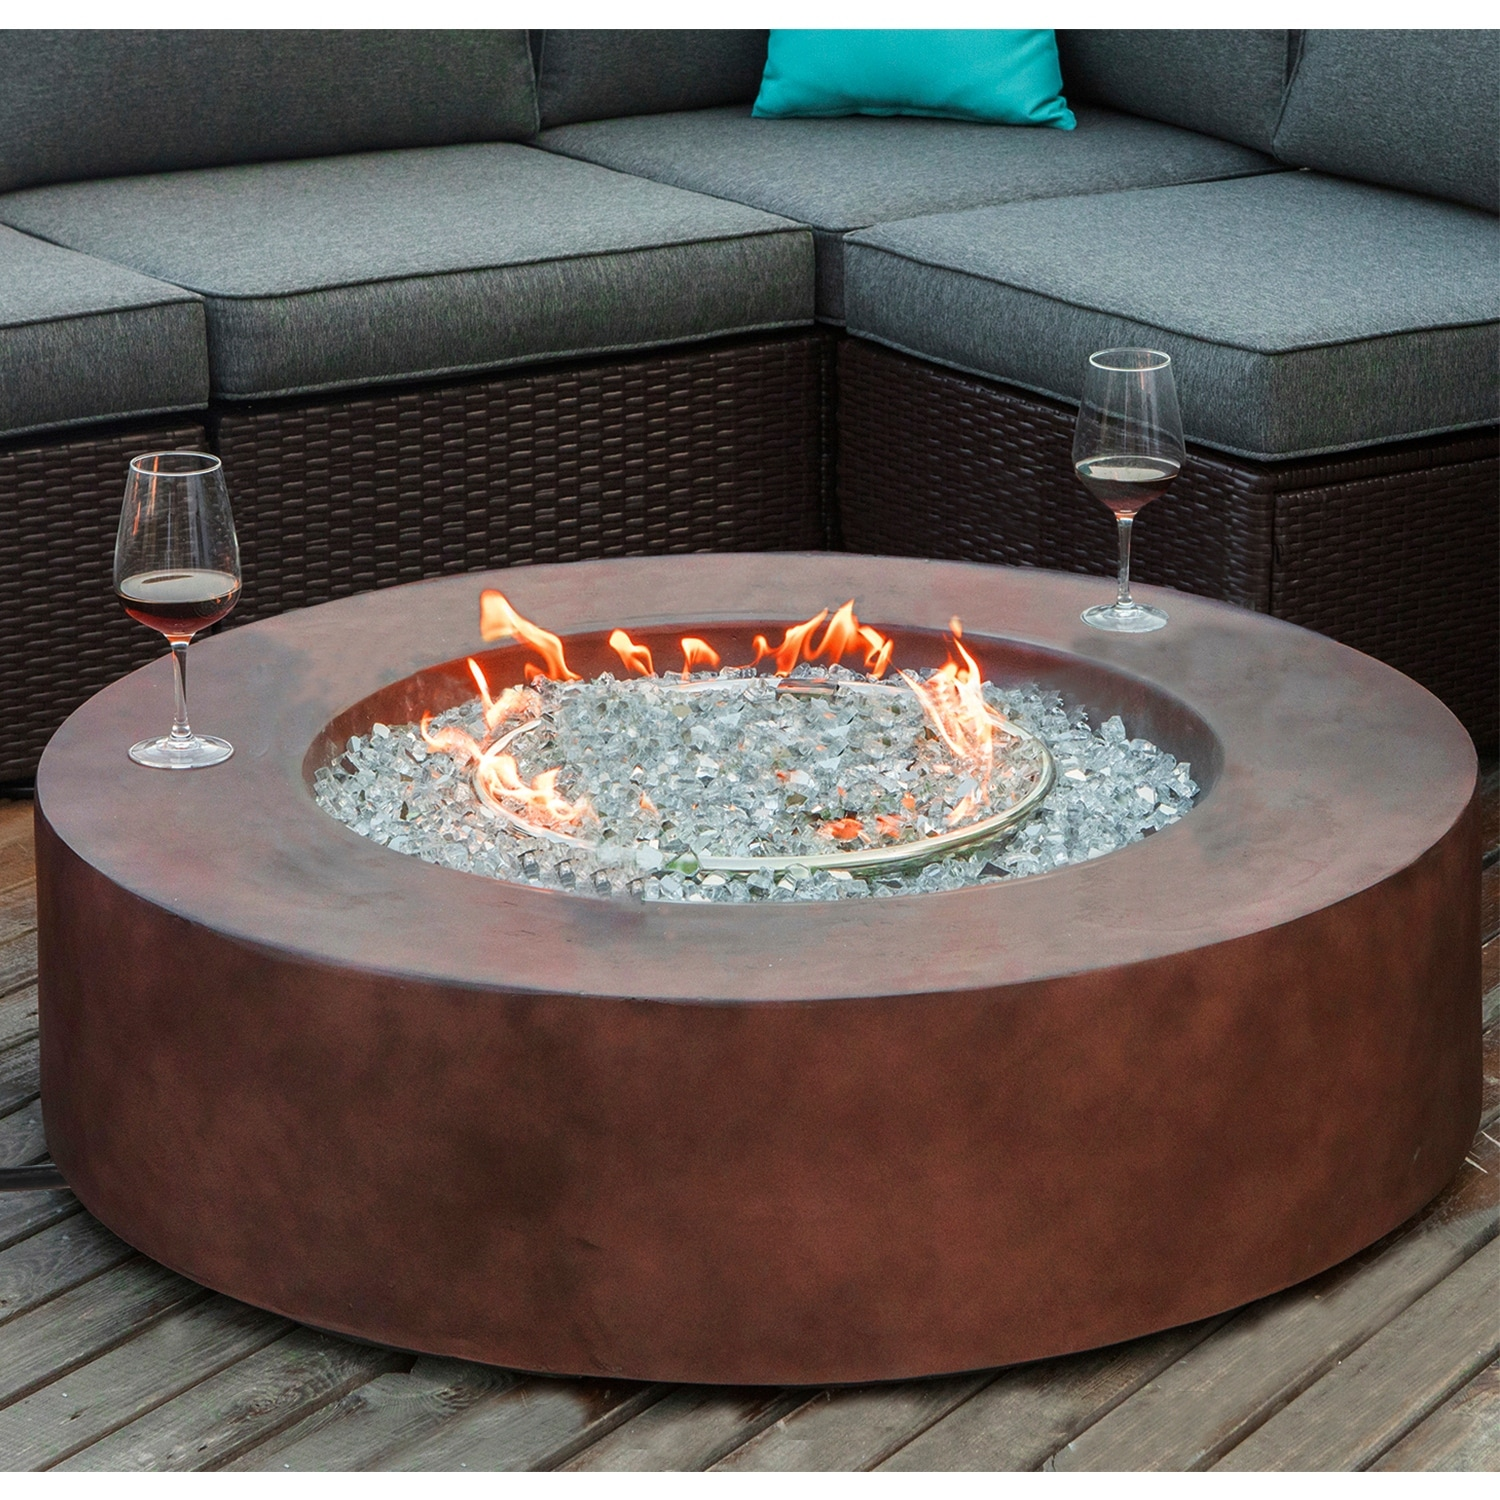 Cosiest Outdoor Propane Fire Pit Tank Outside Overstock 31500538